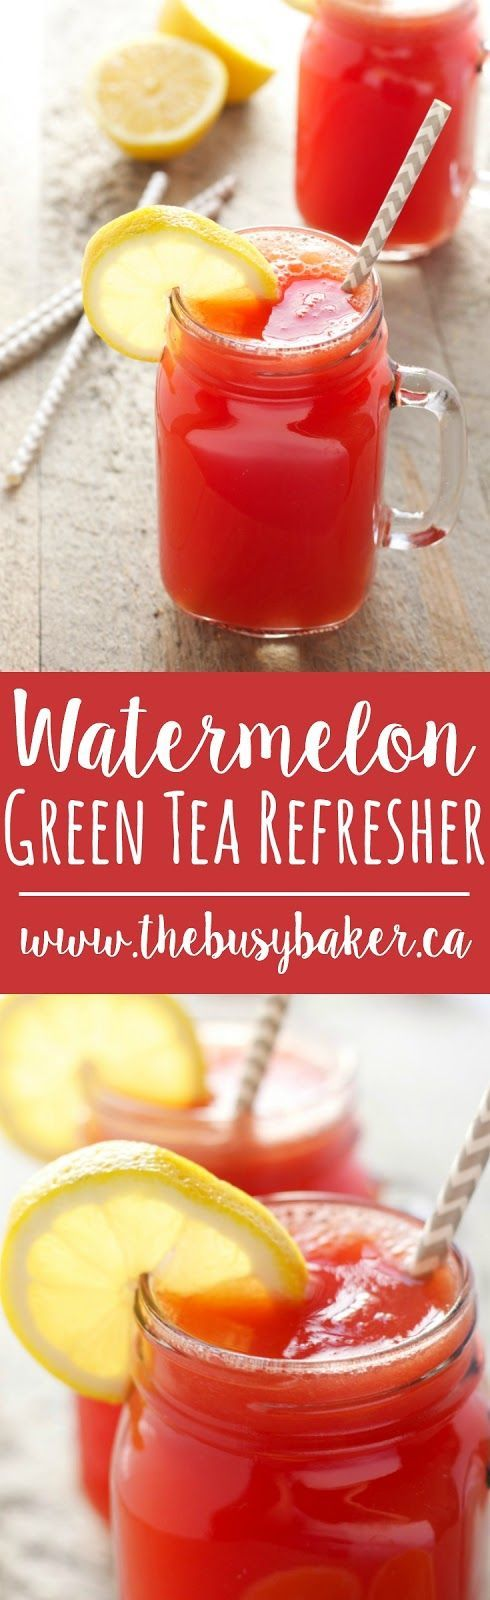 Watermelon Green Tea Refresher ~ The perfect healthy non-alcoholic cocktail! Healthy and refreshing! |  thebusybaker.ca